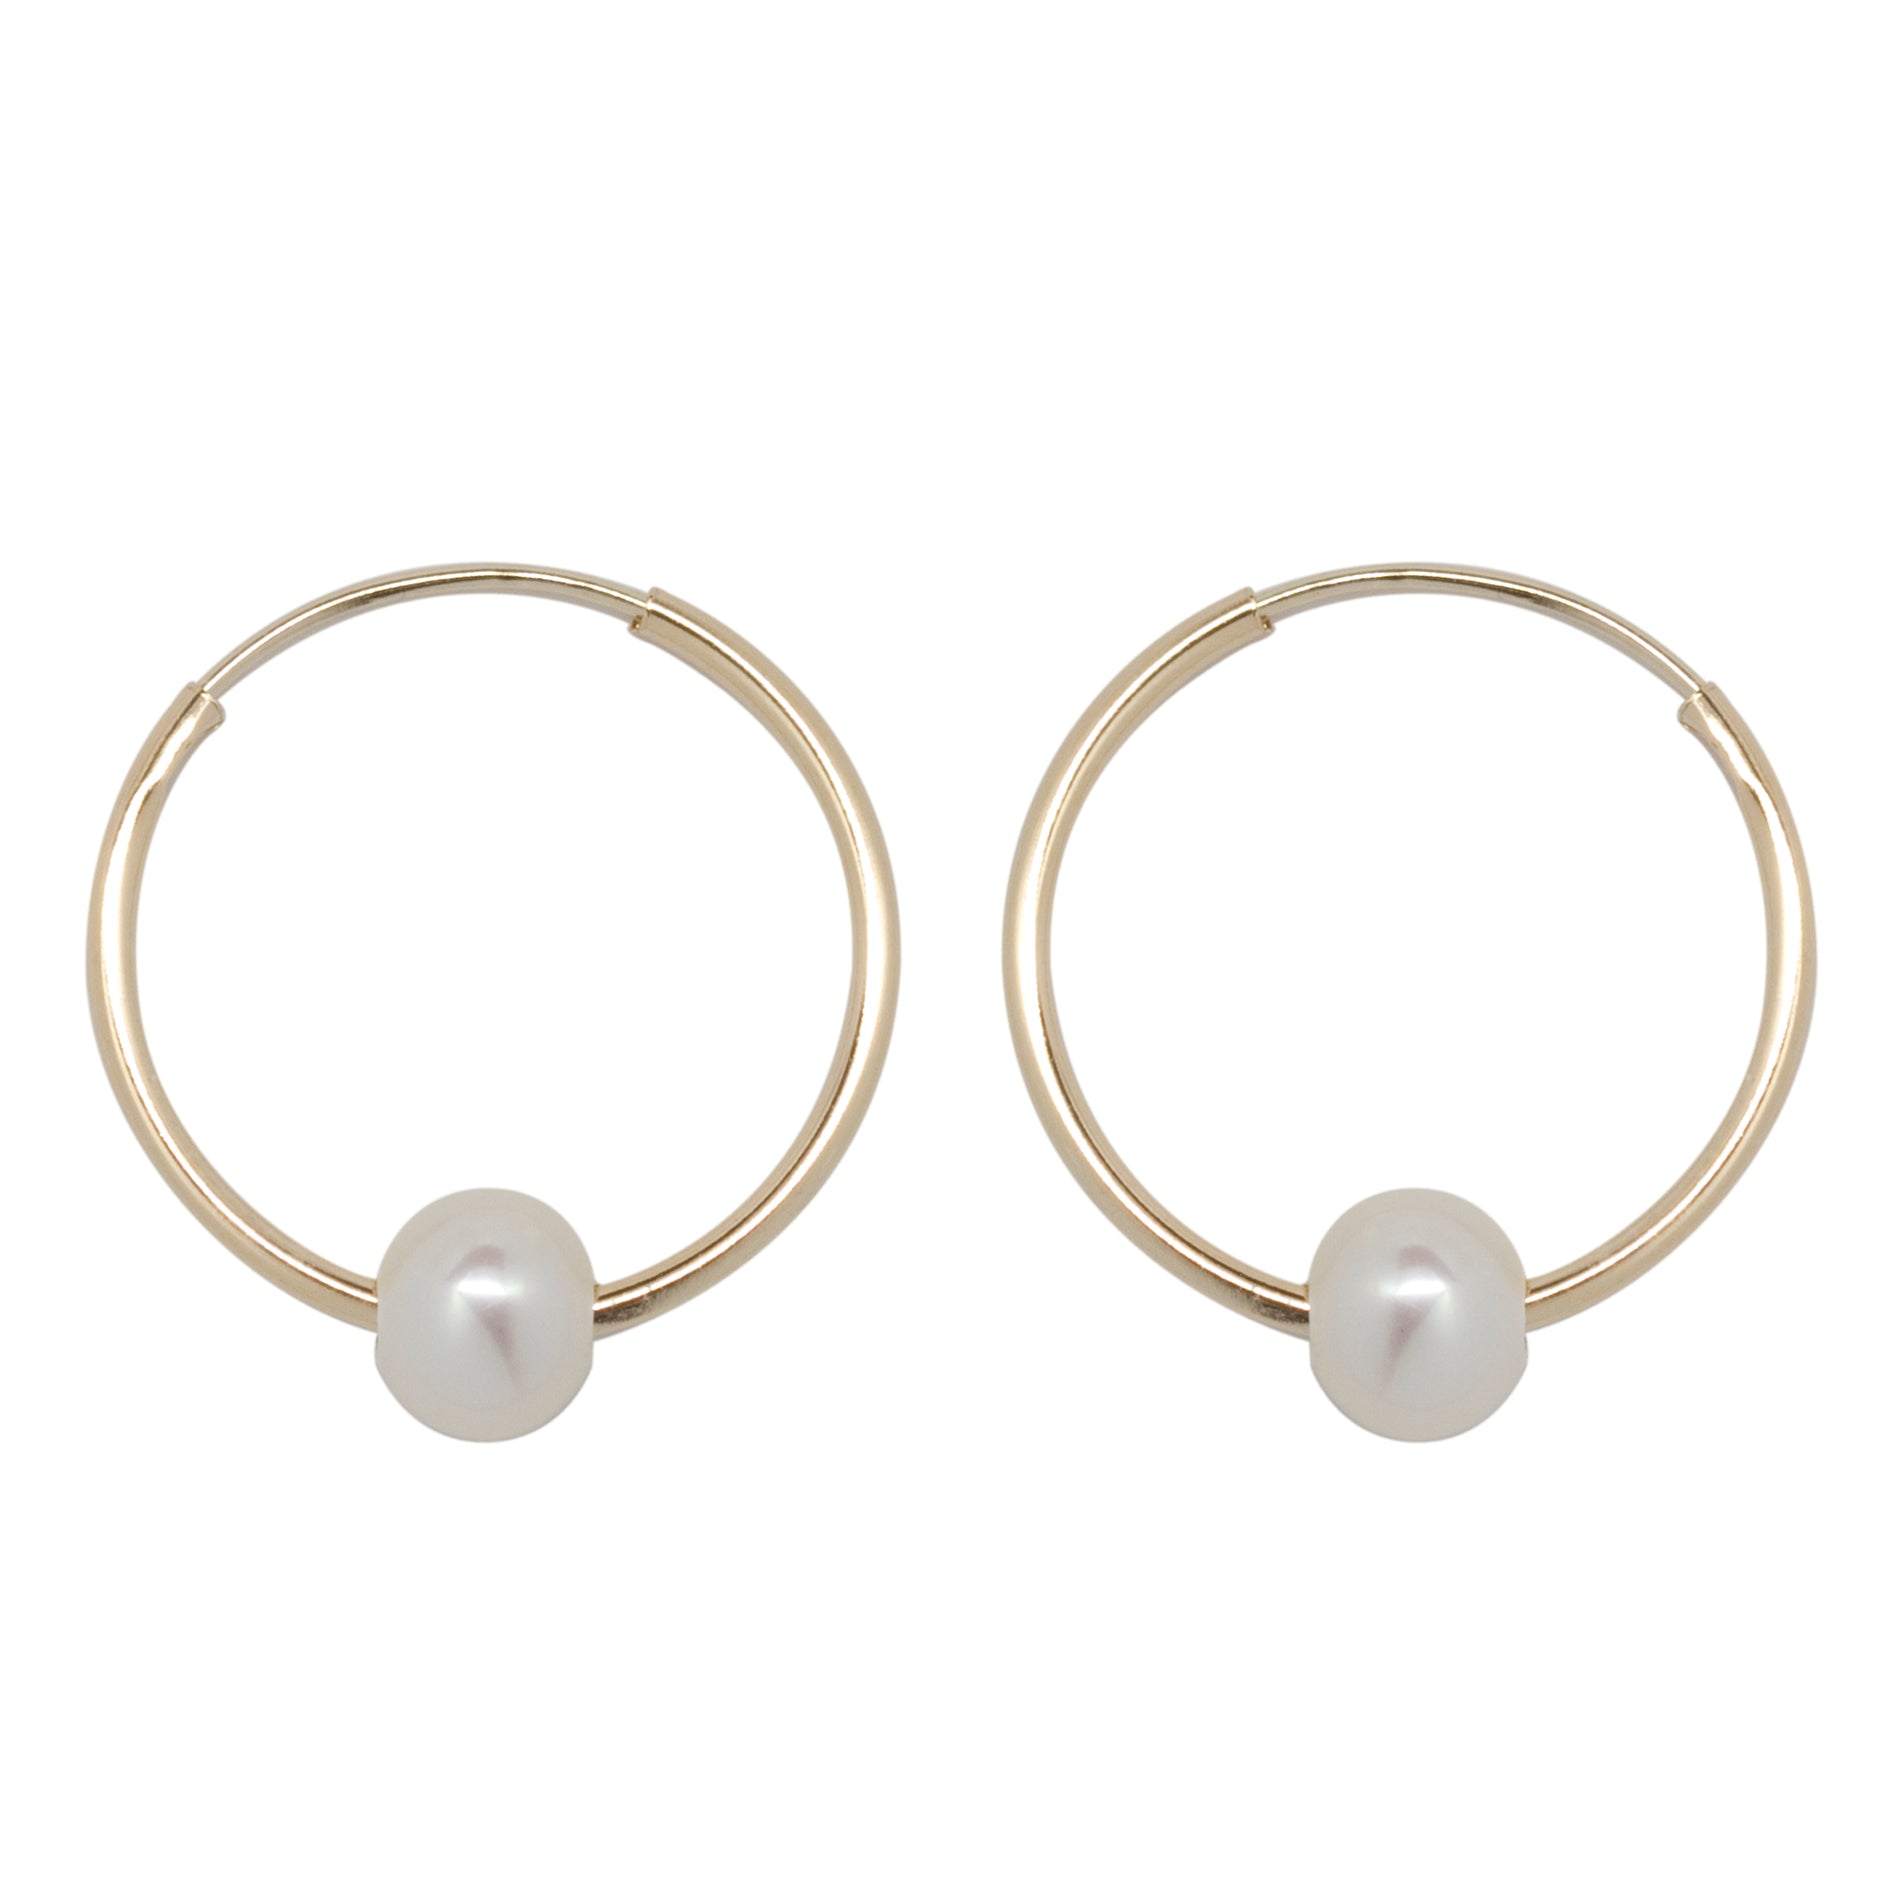 us thin s jewellery earrings claire hoop gold